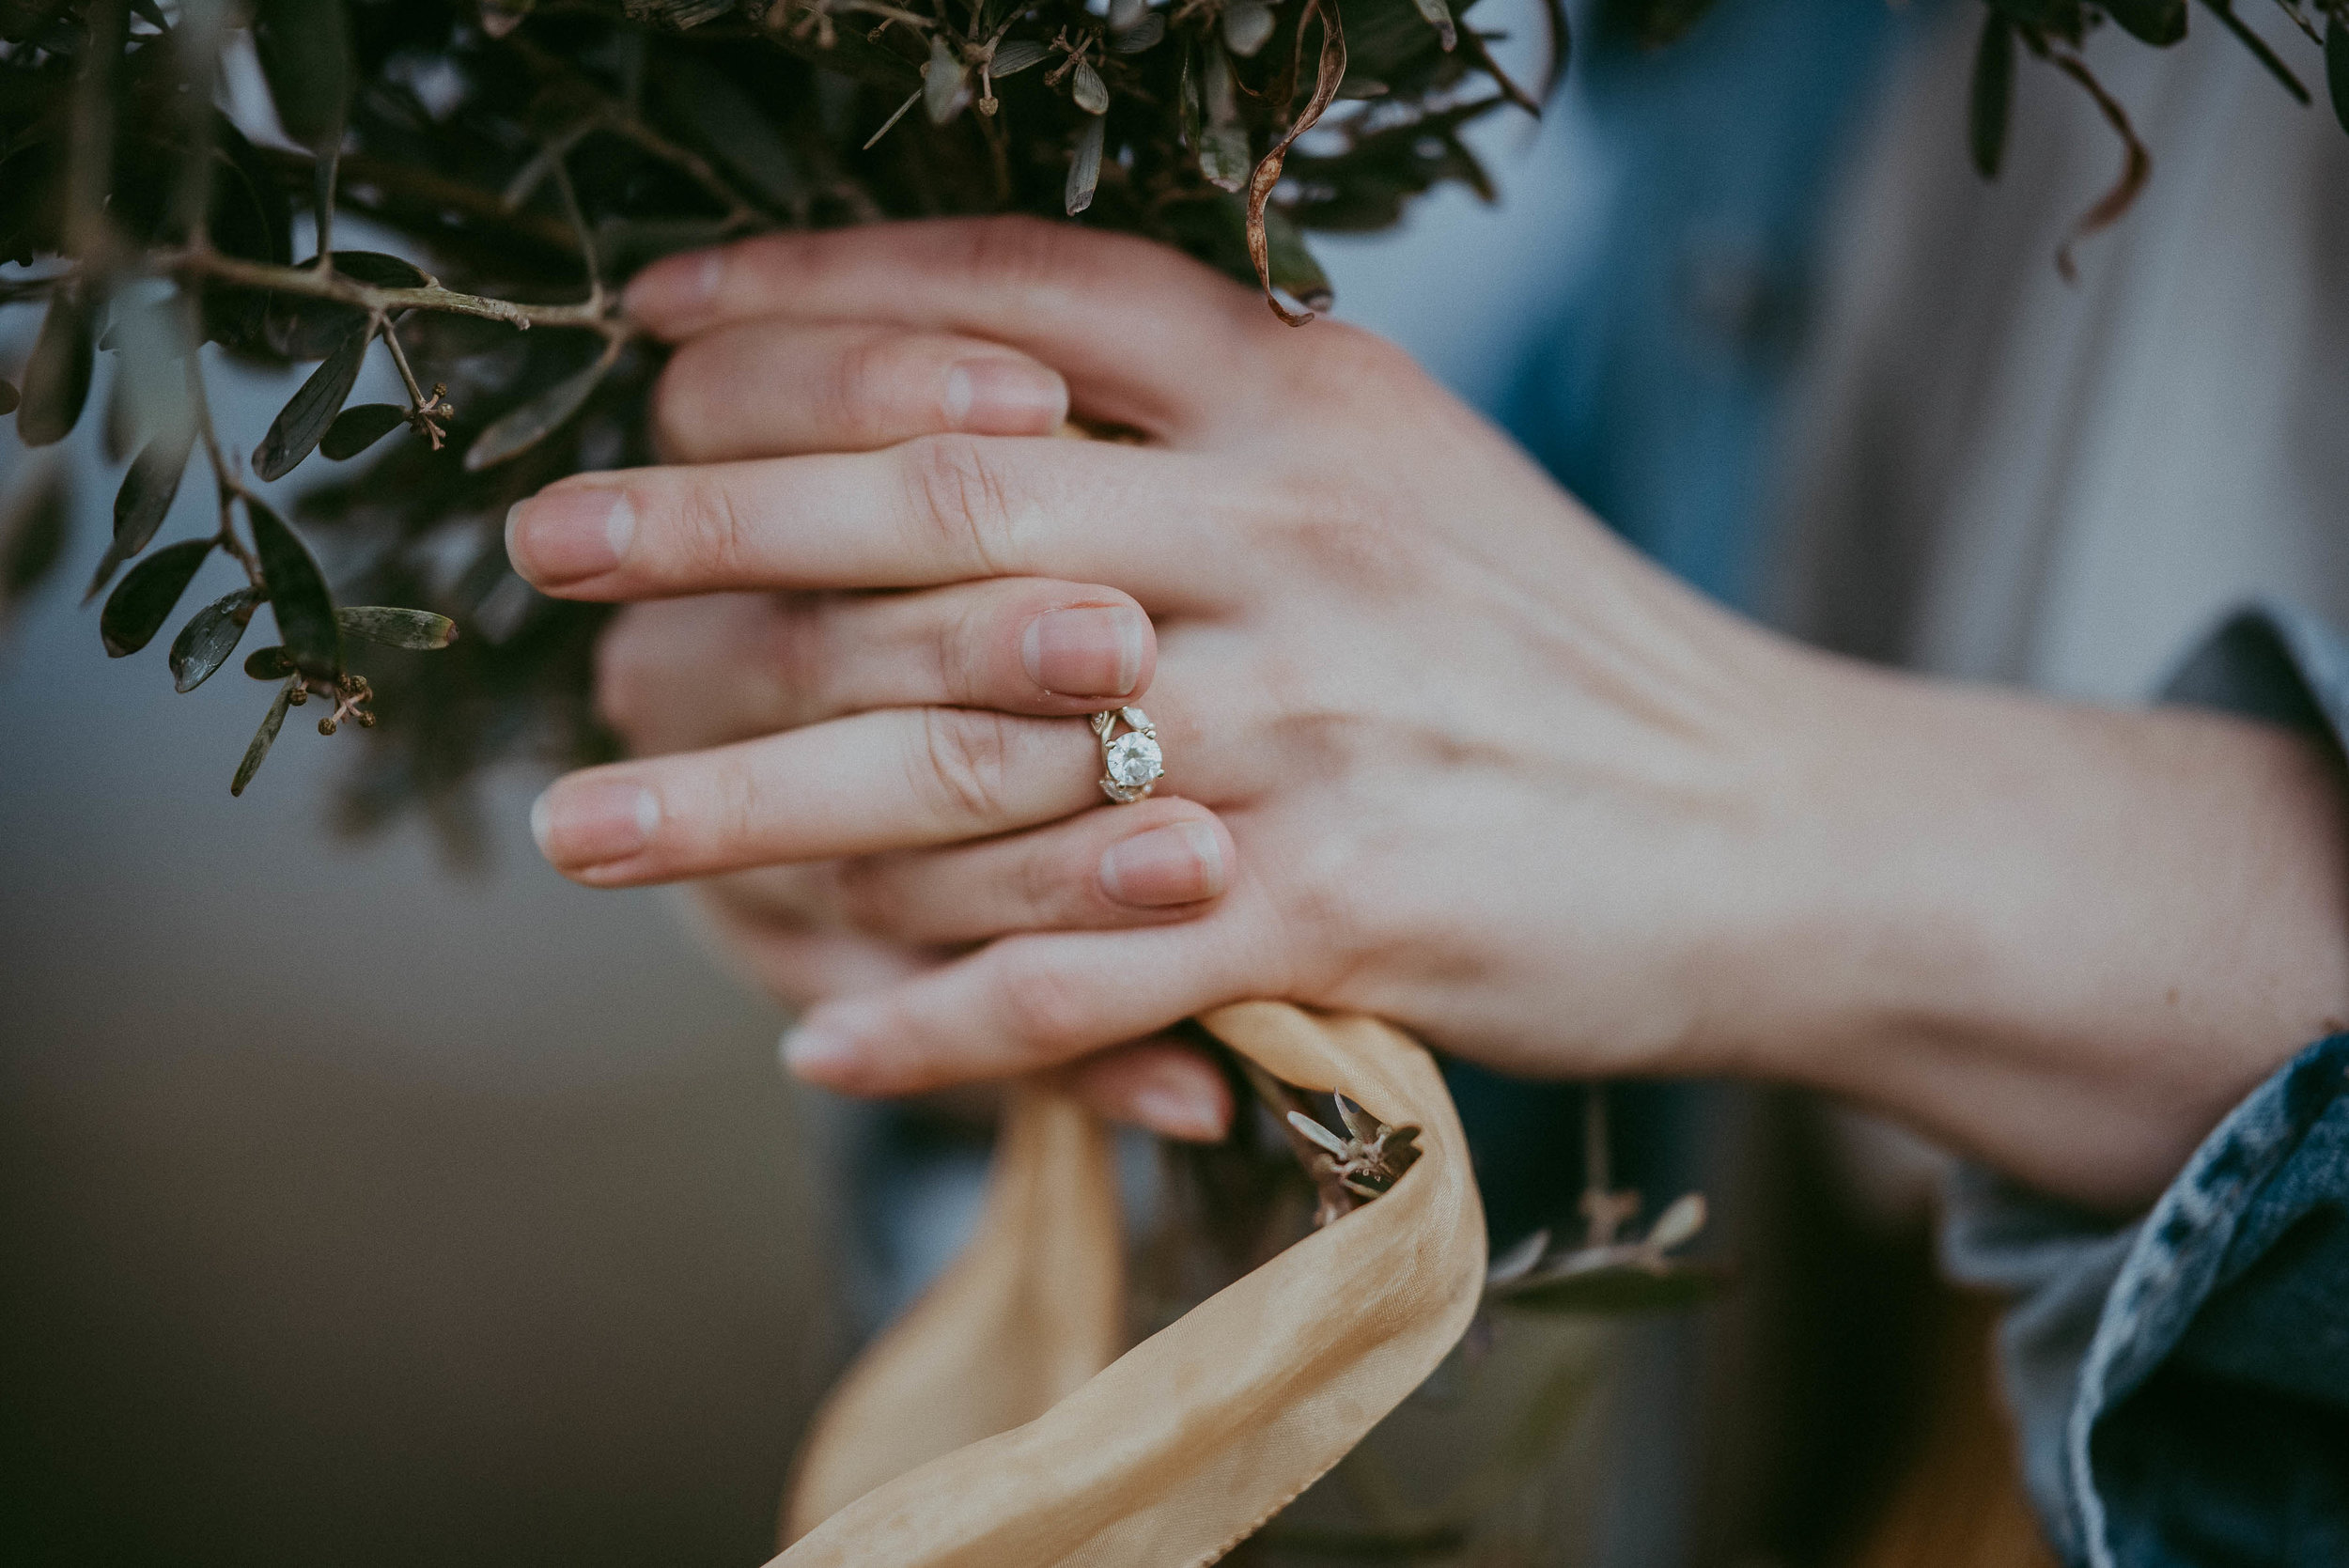 Lets_Spread_Beauty_Engagement Session20190212_000300.jpg